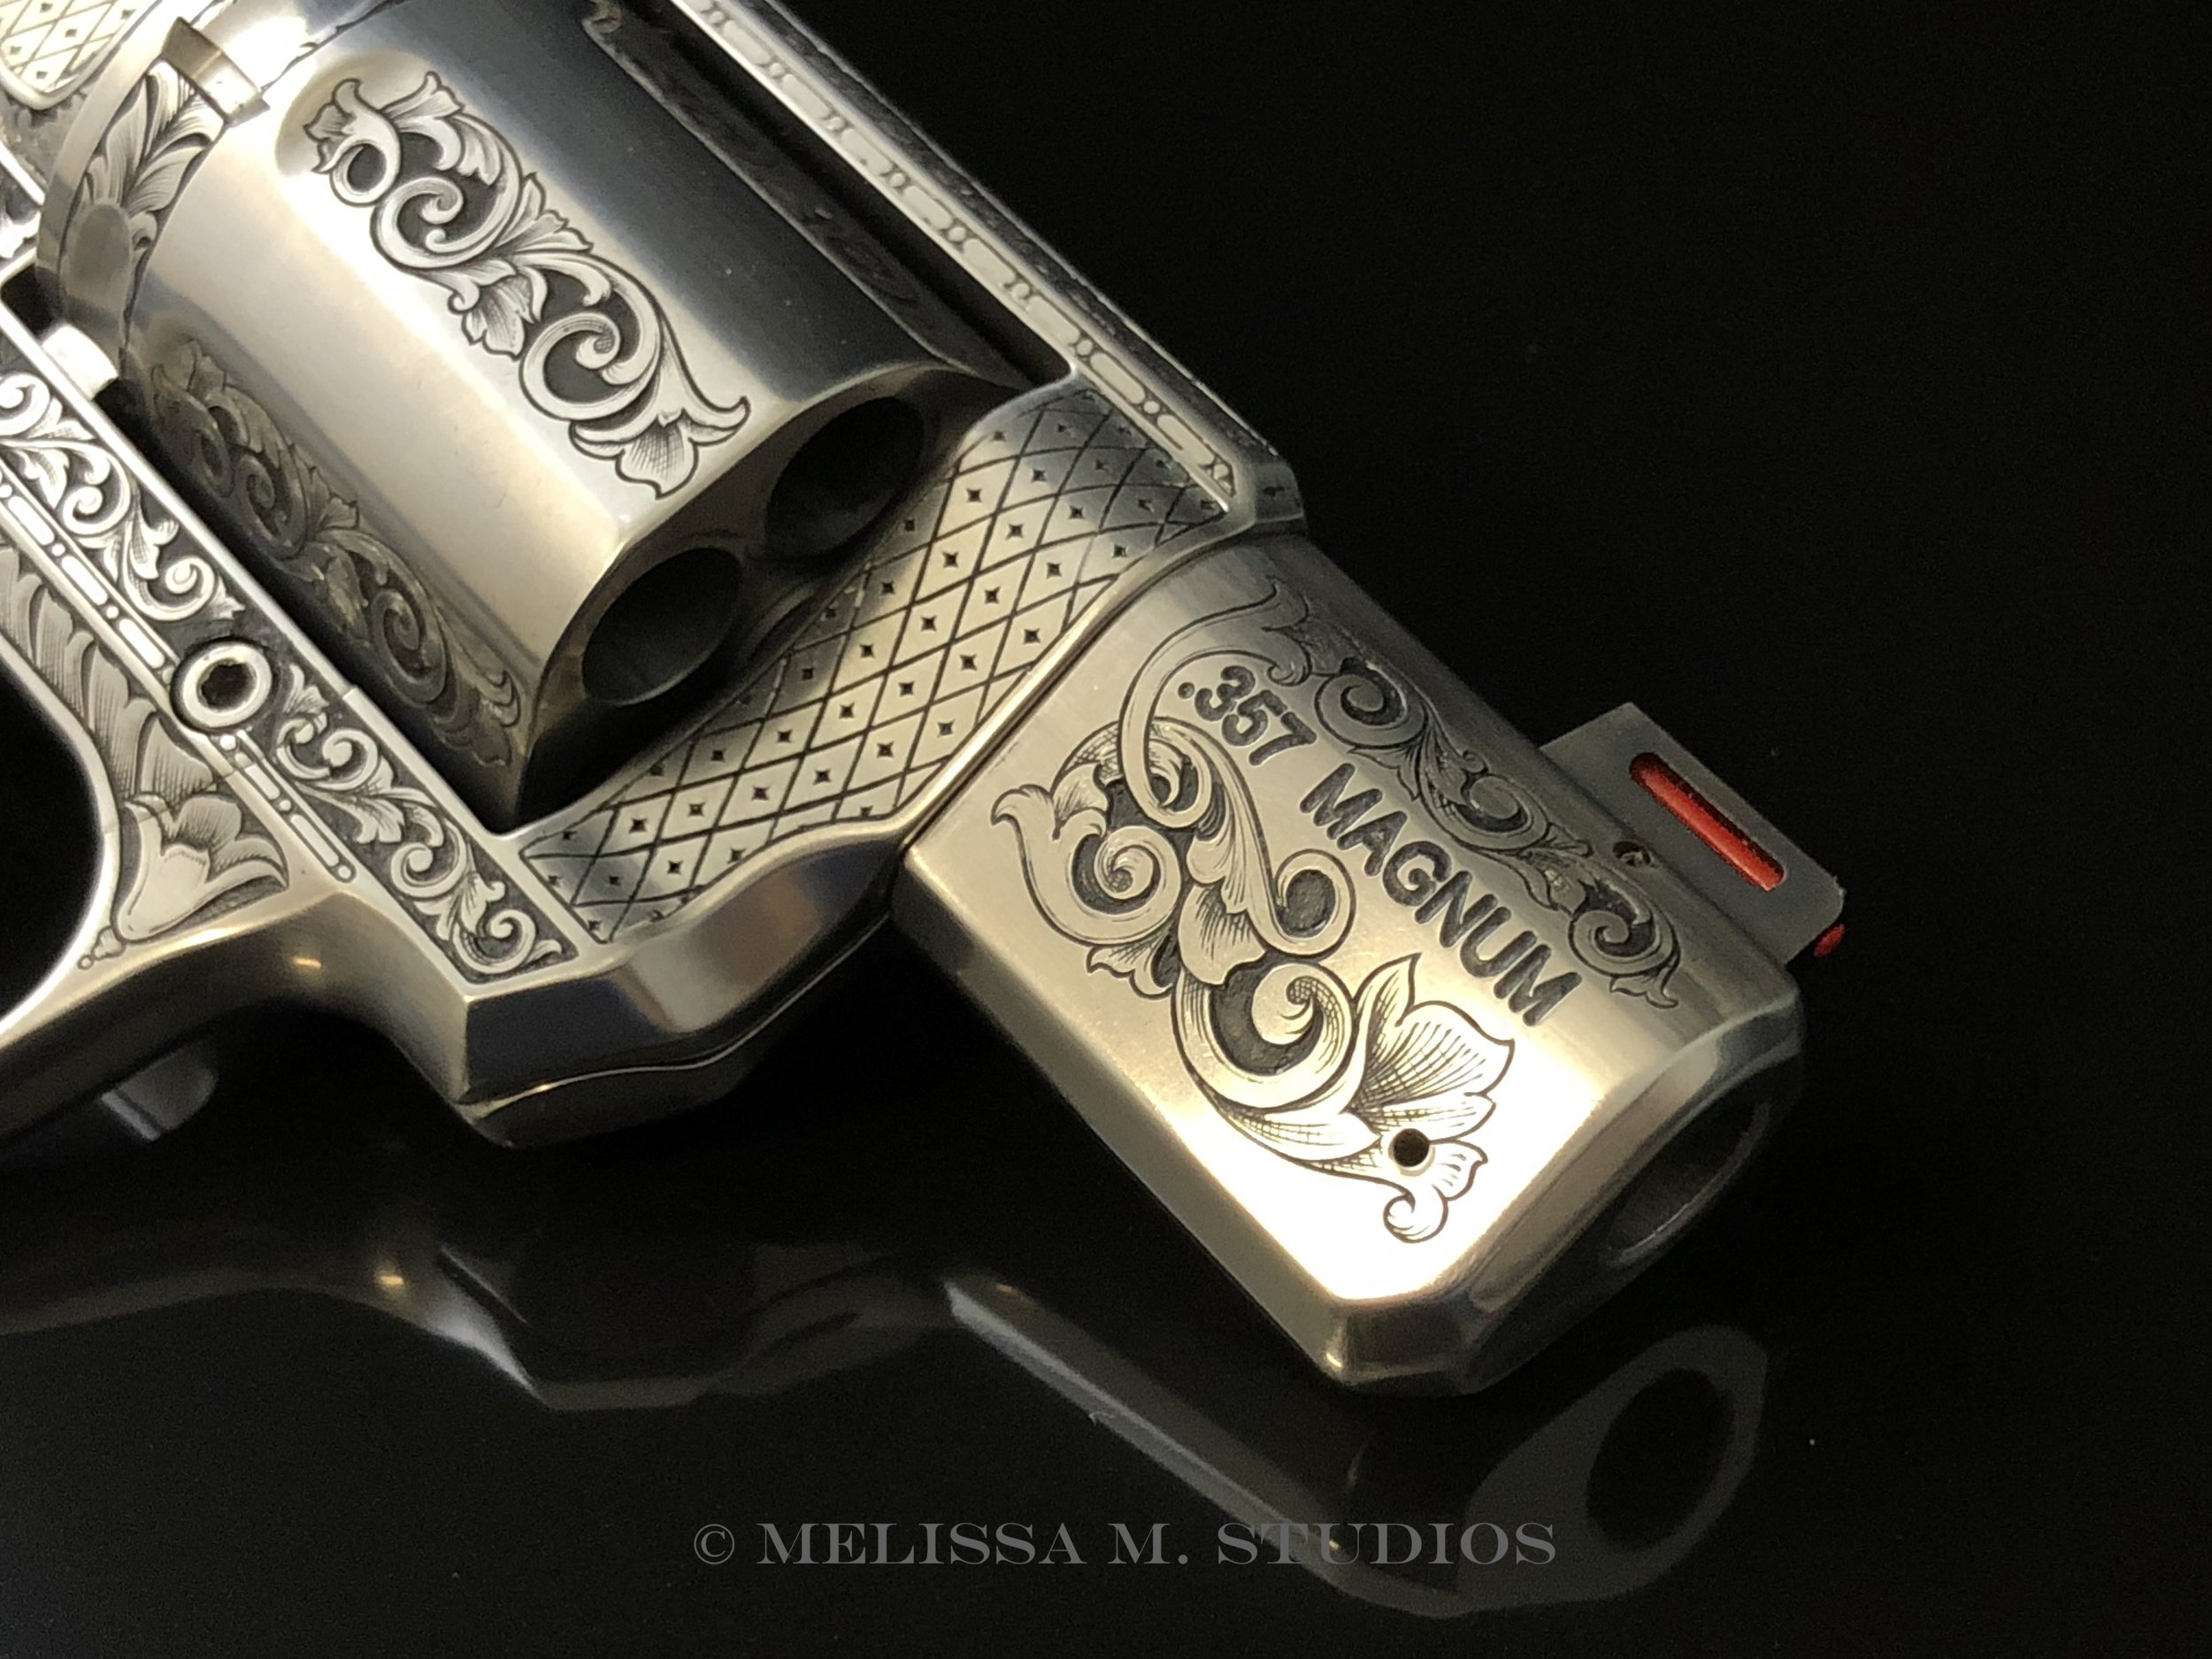 .357 Magnum Revolver Barrel Engraving